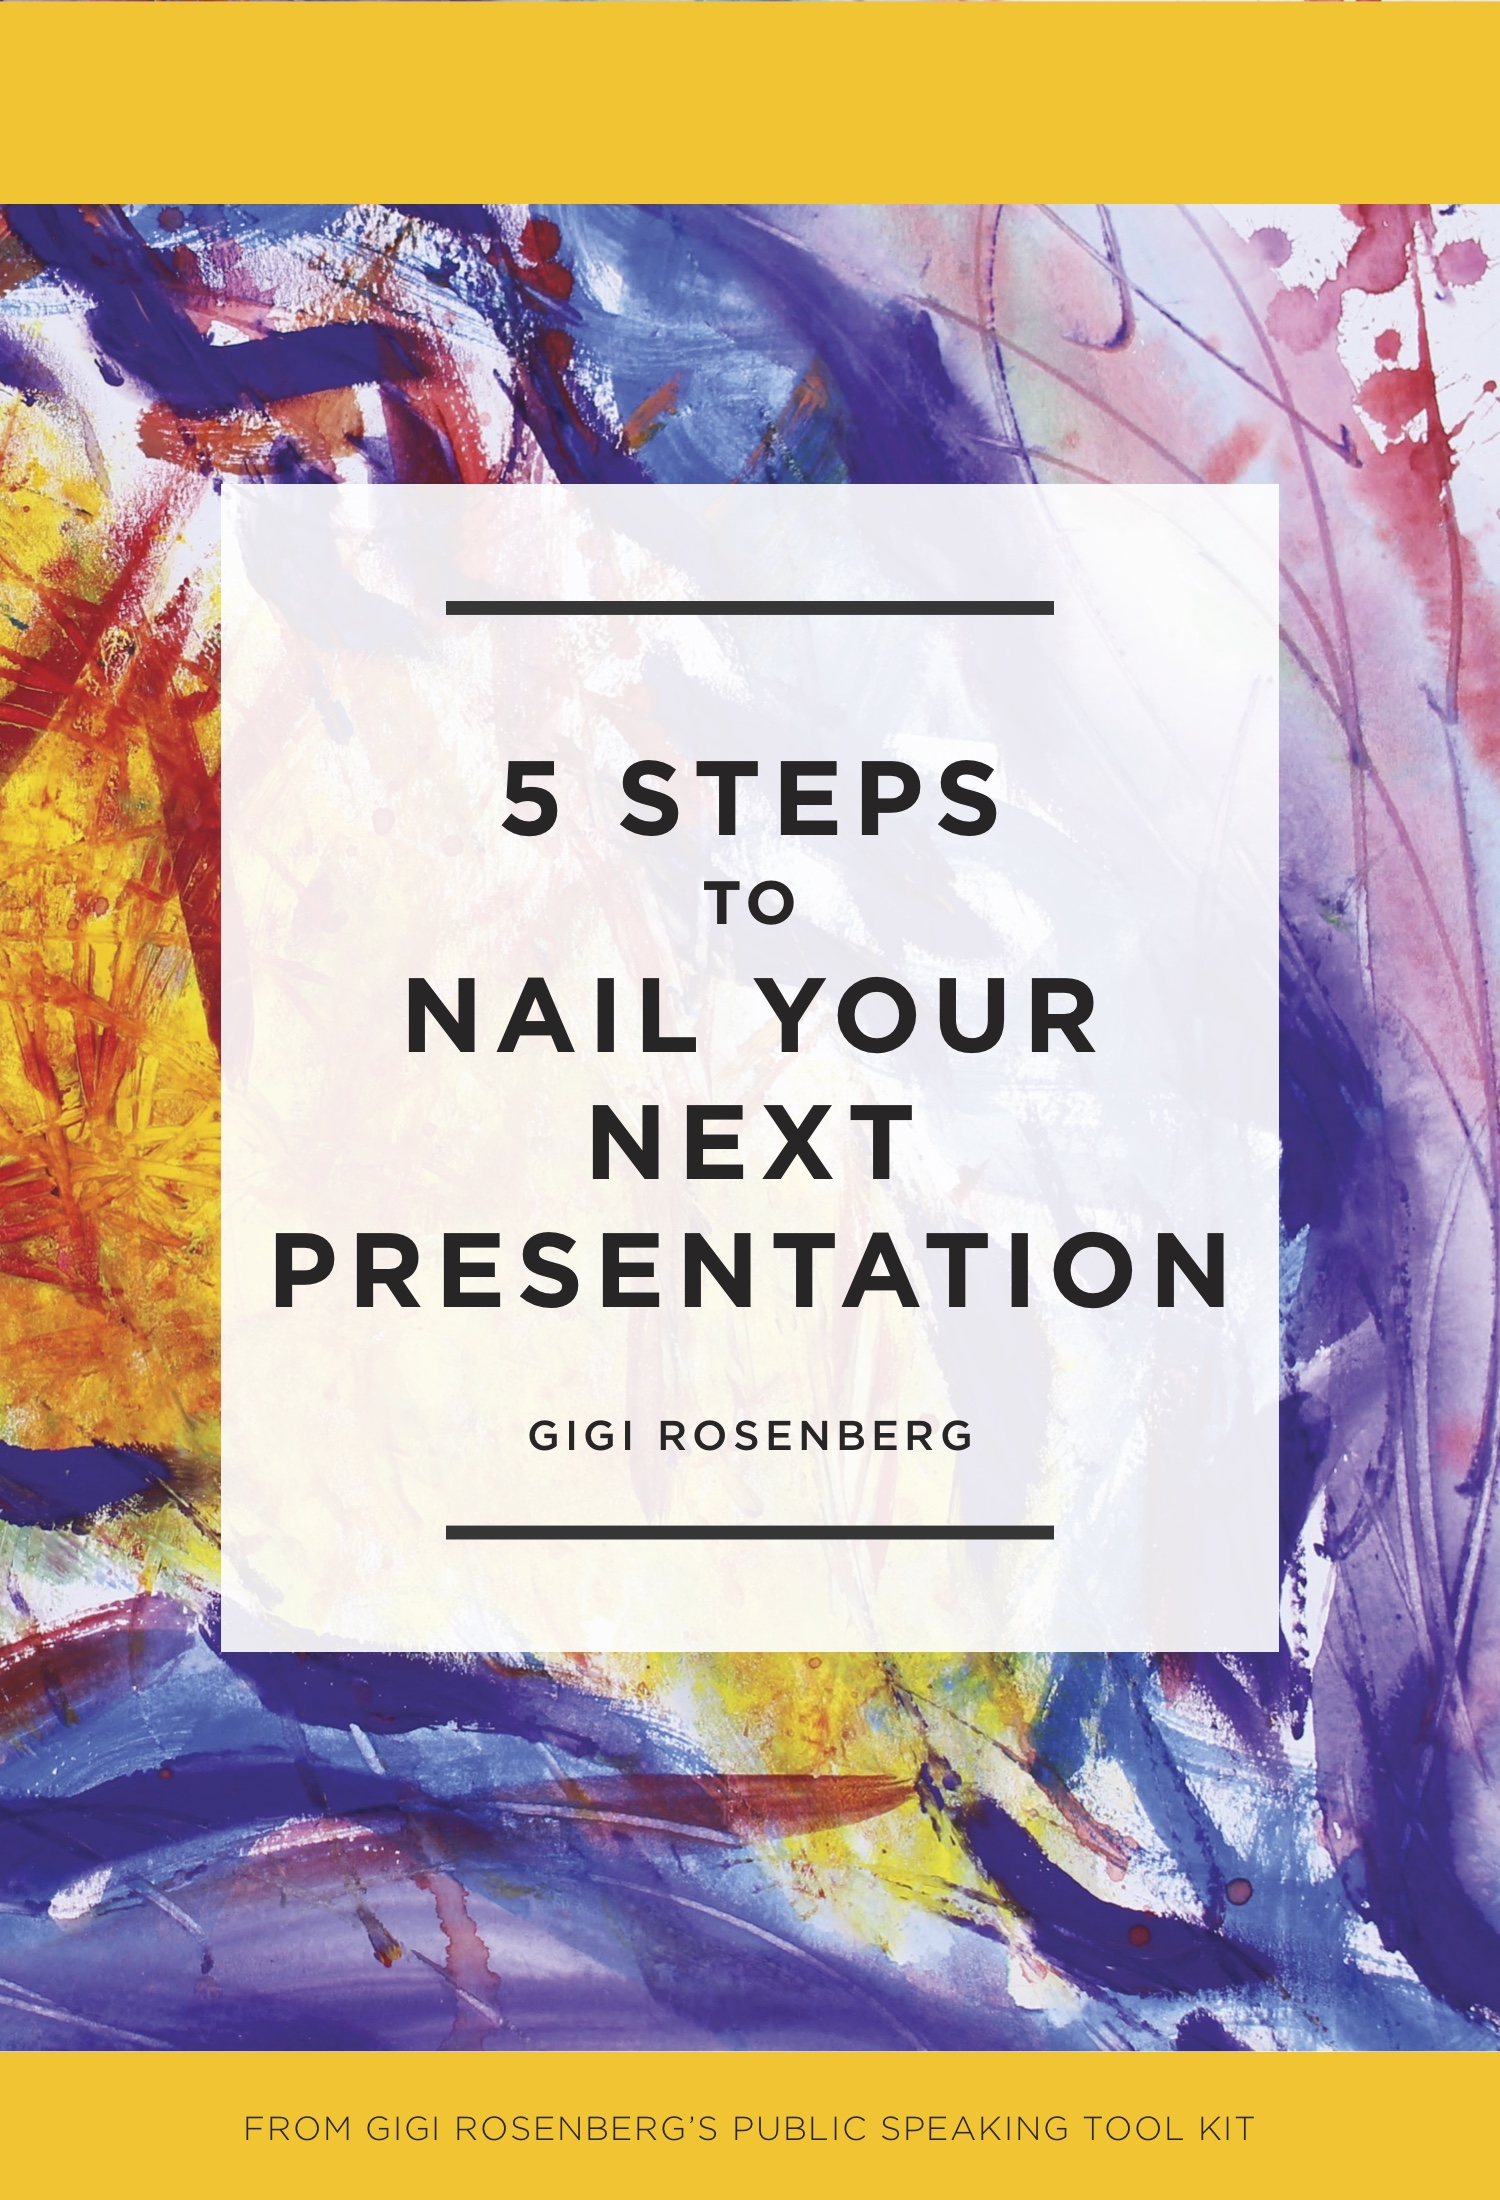 Gigi Rosenberg-Nail Your Presentation.jpg